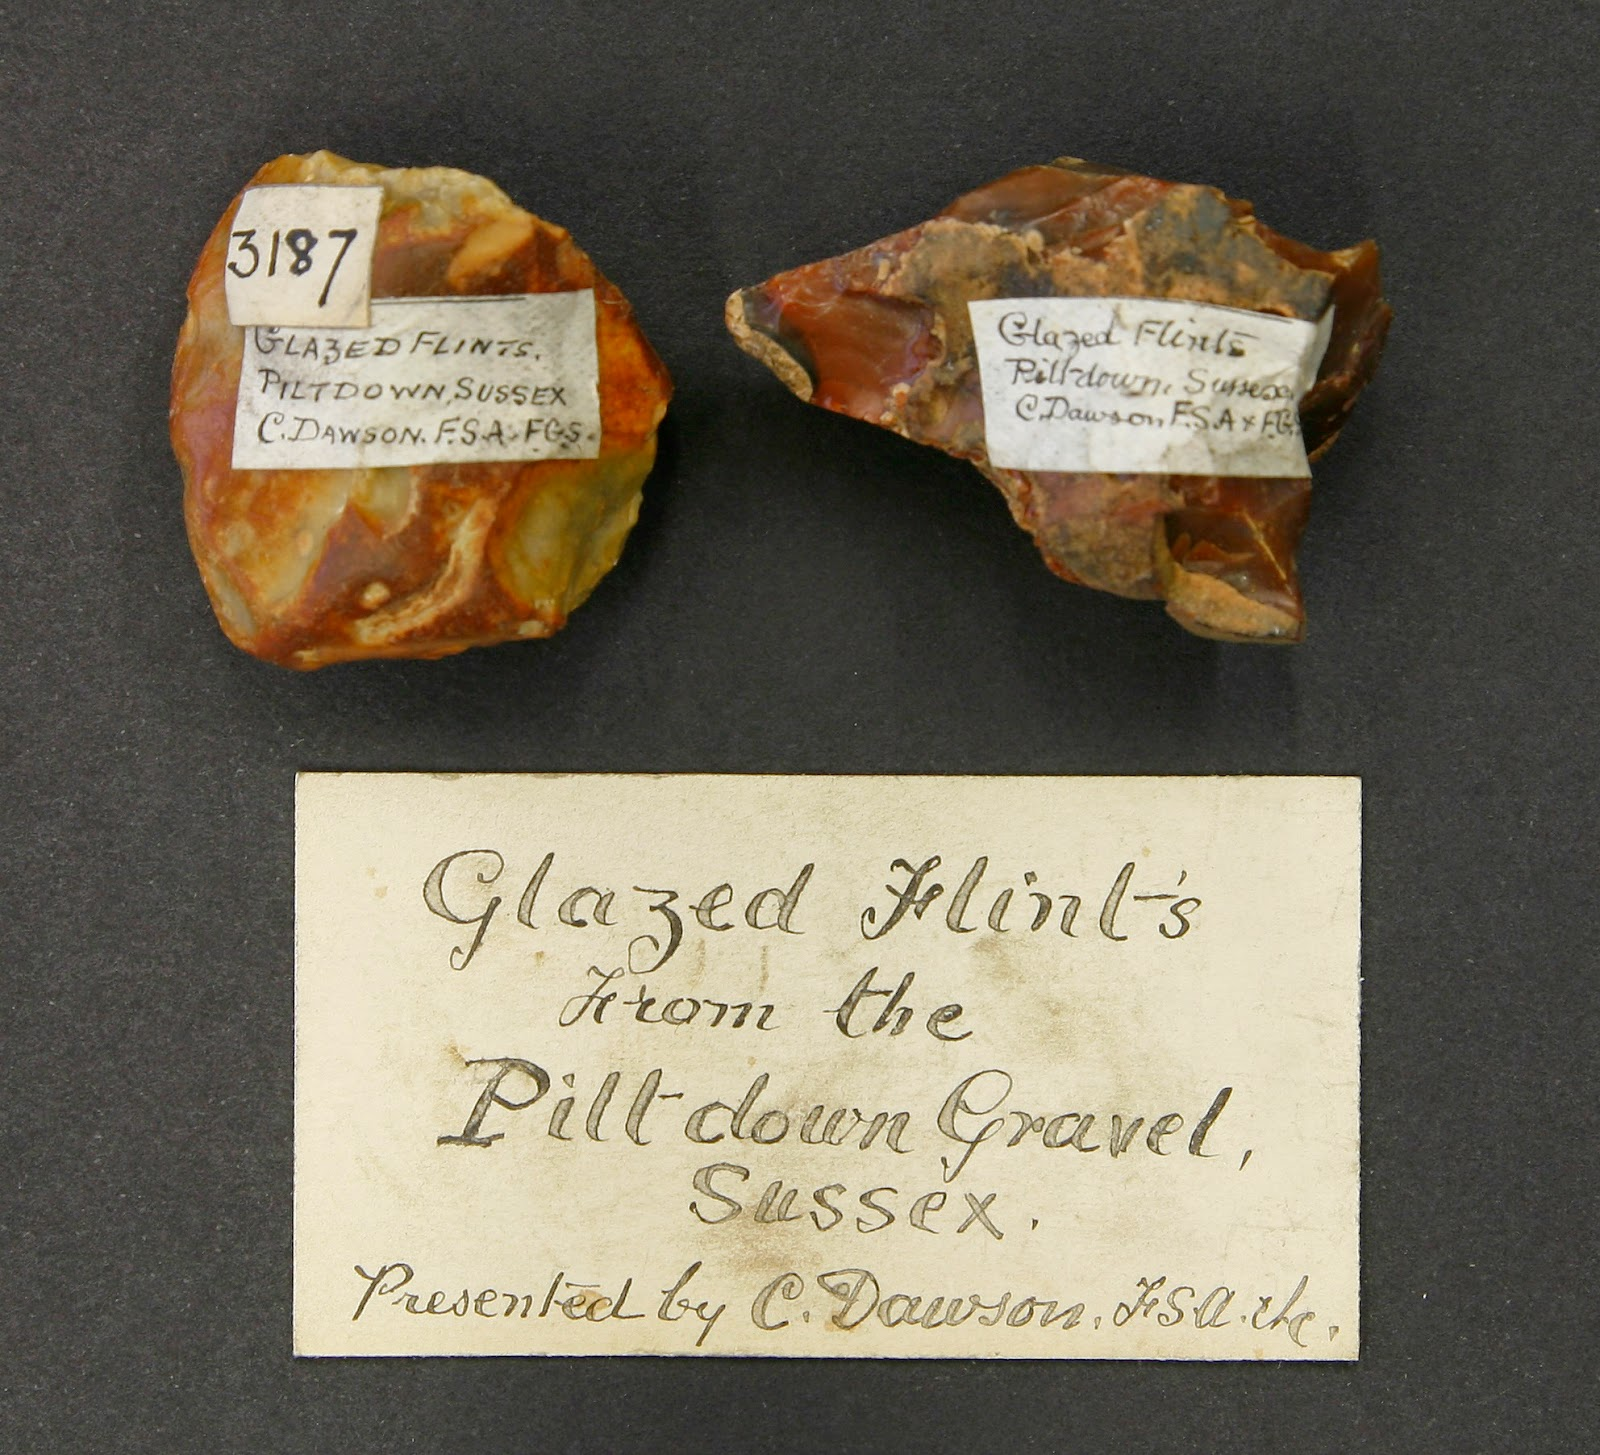 Glazed flints from Piltdown gravel, Sussex